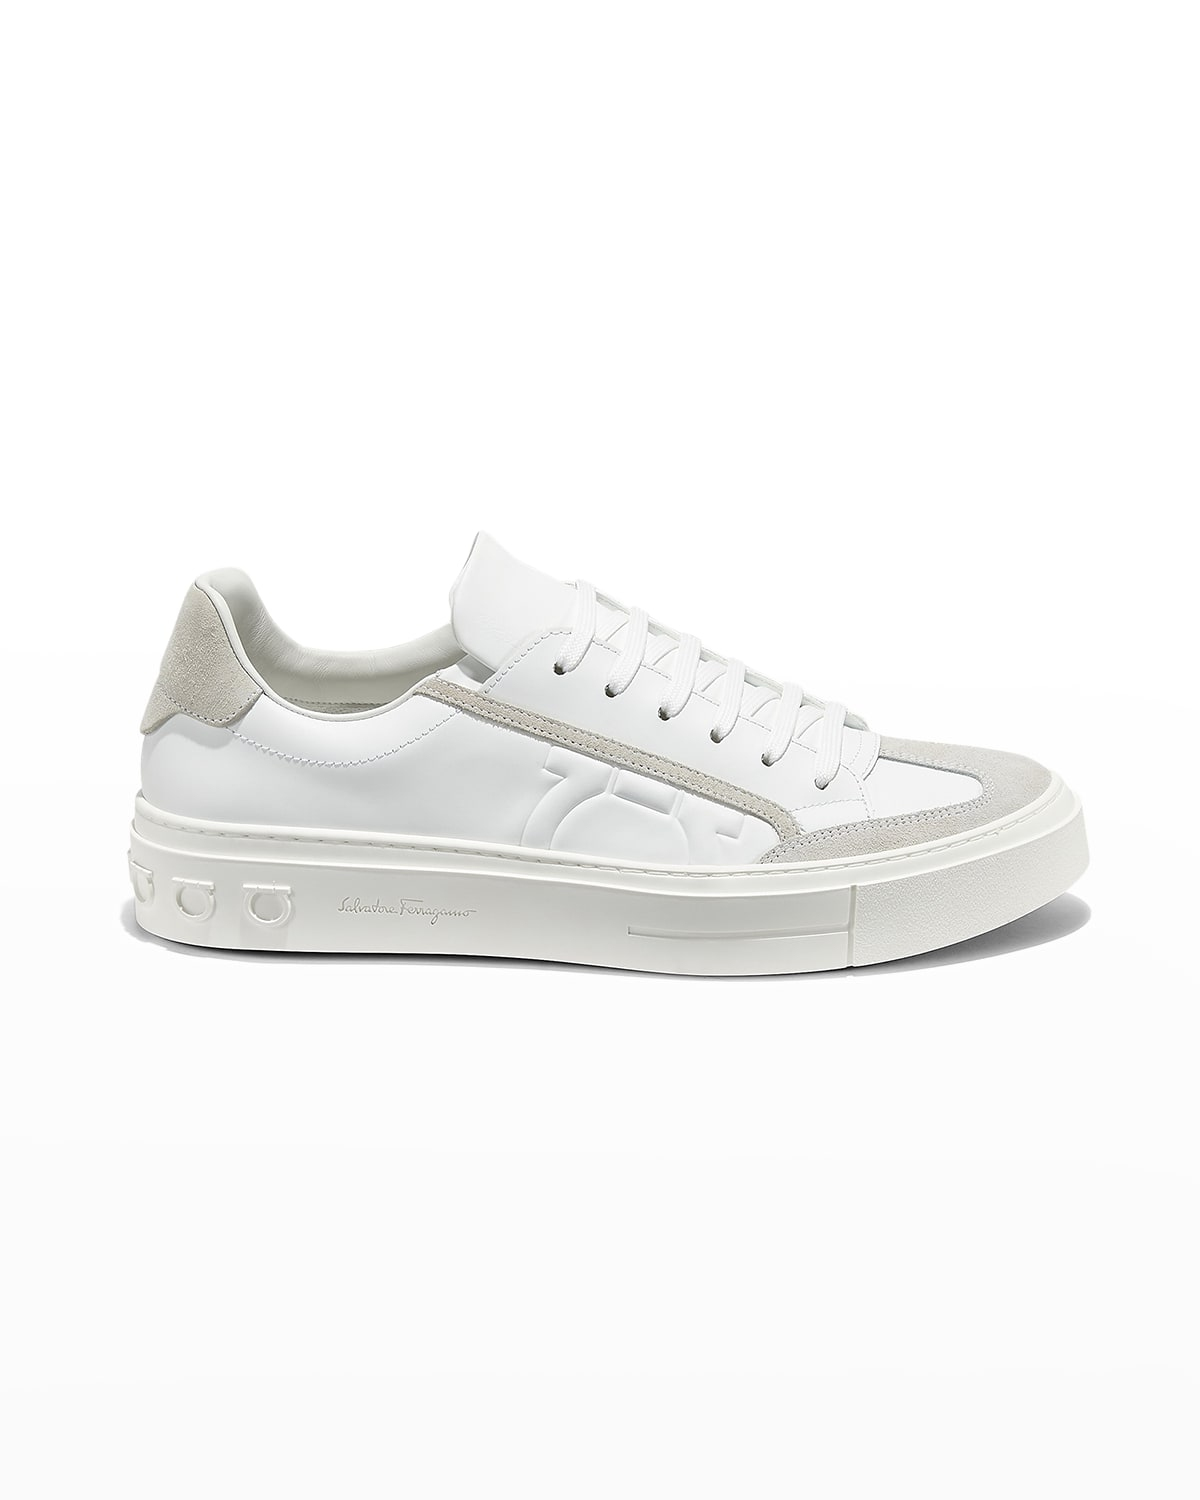 Men's Borg Low-Top Leather Sneakers